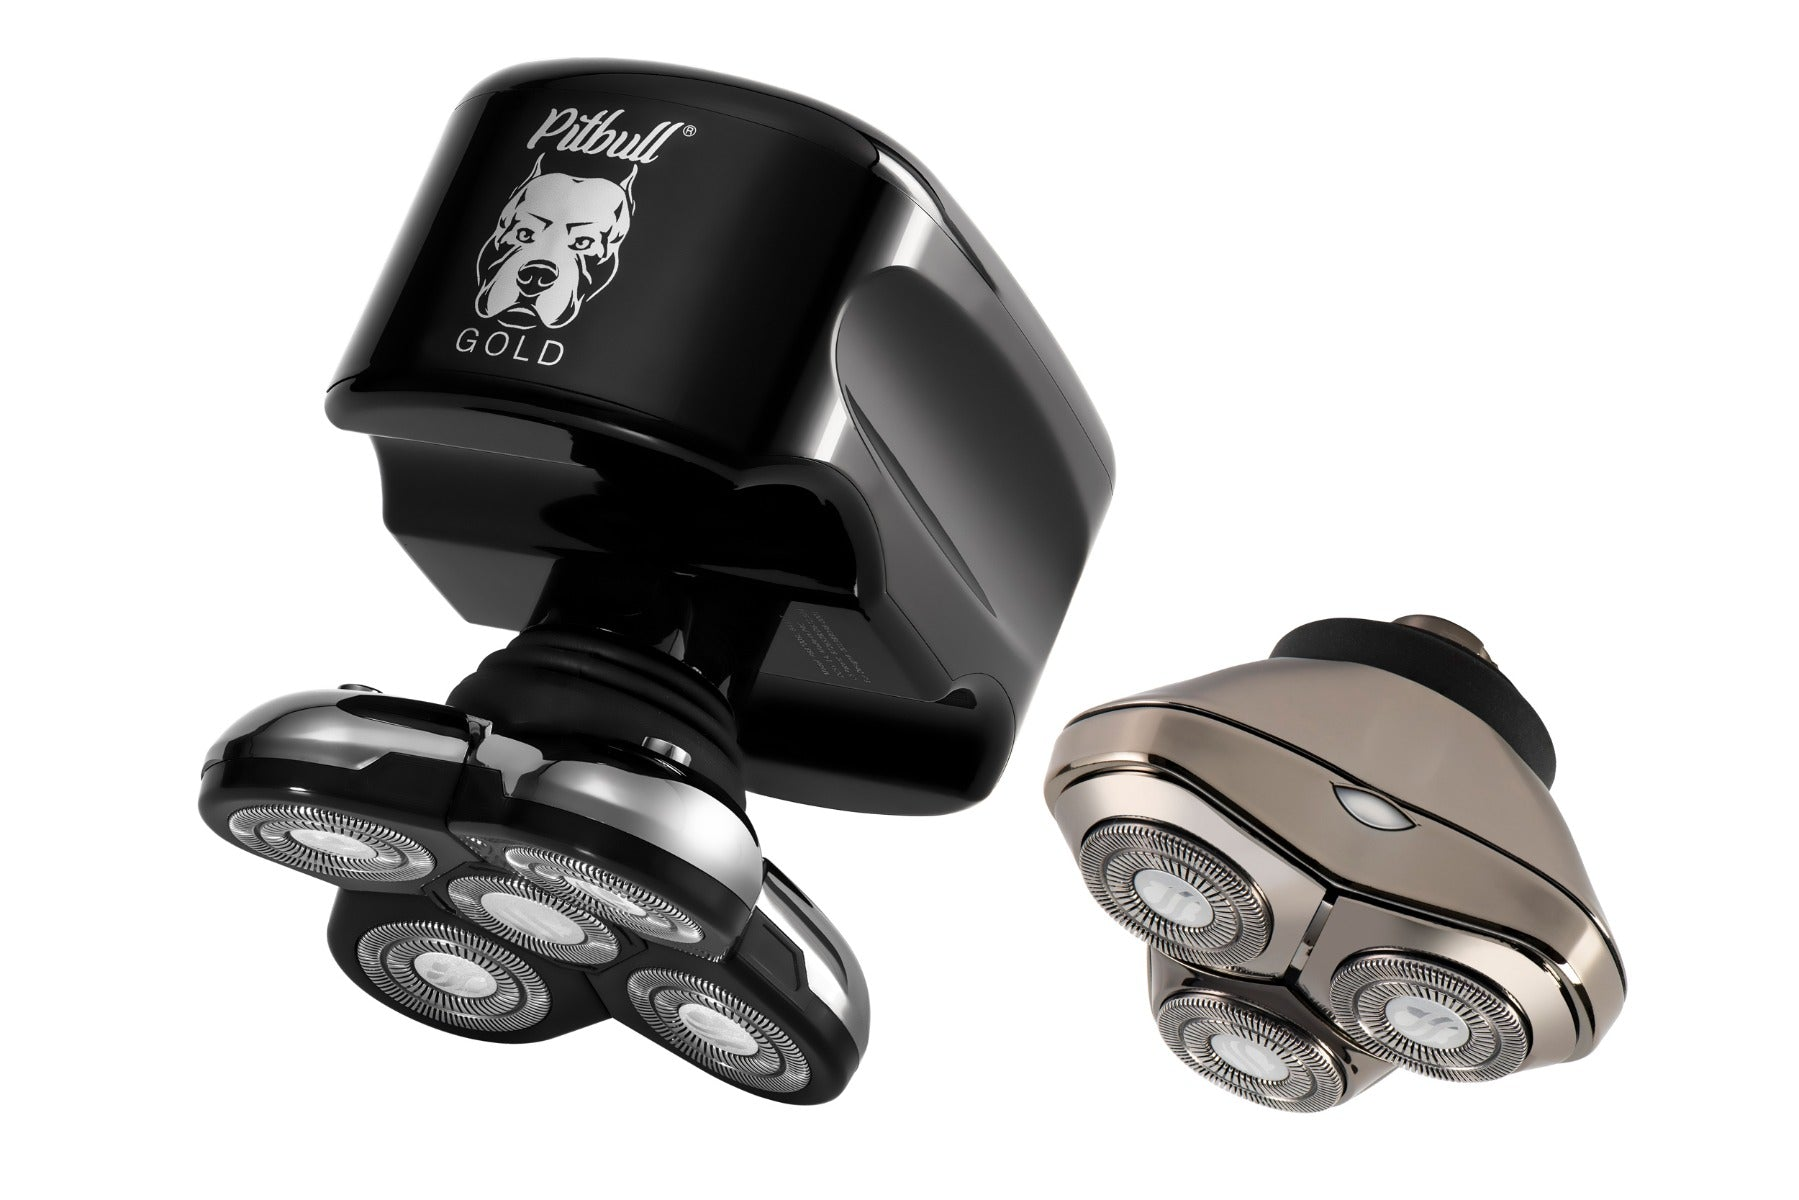 Pitbull Gold Plus head and face shaver with two blades